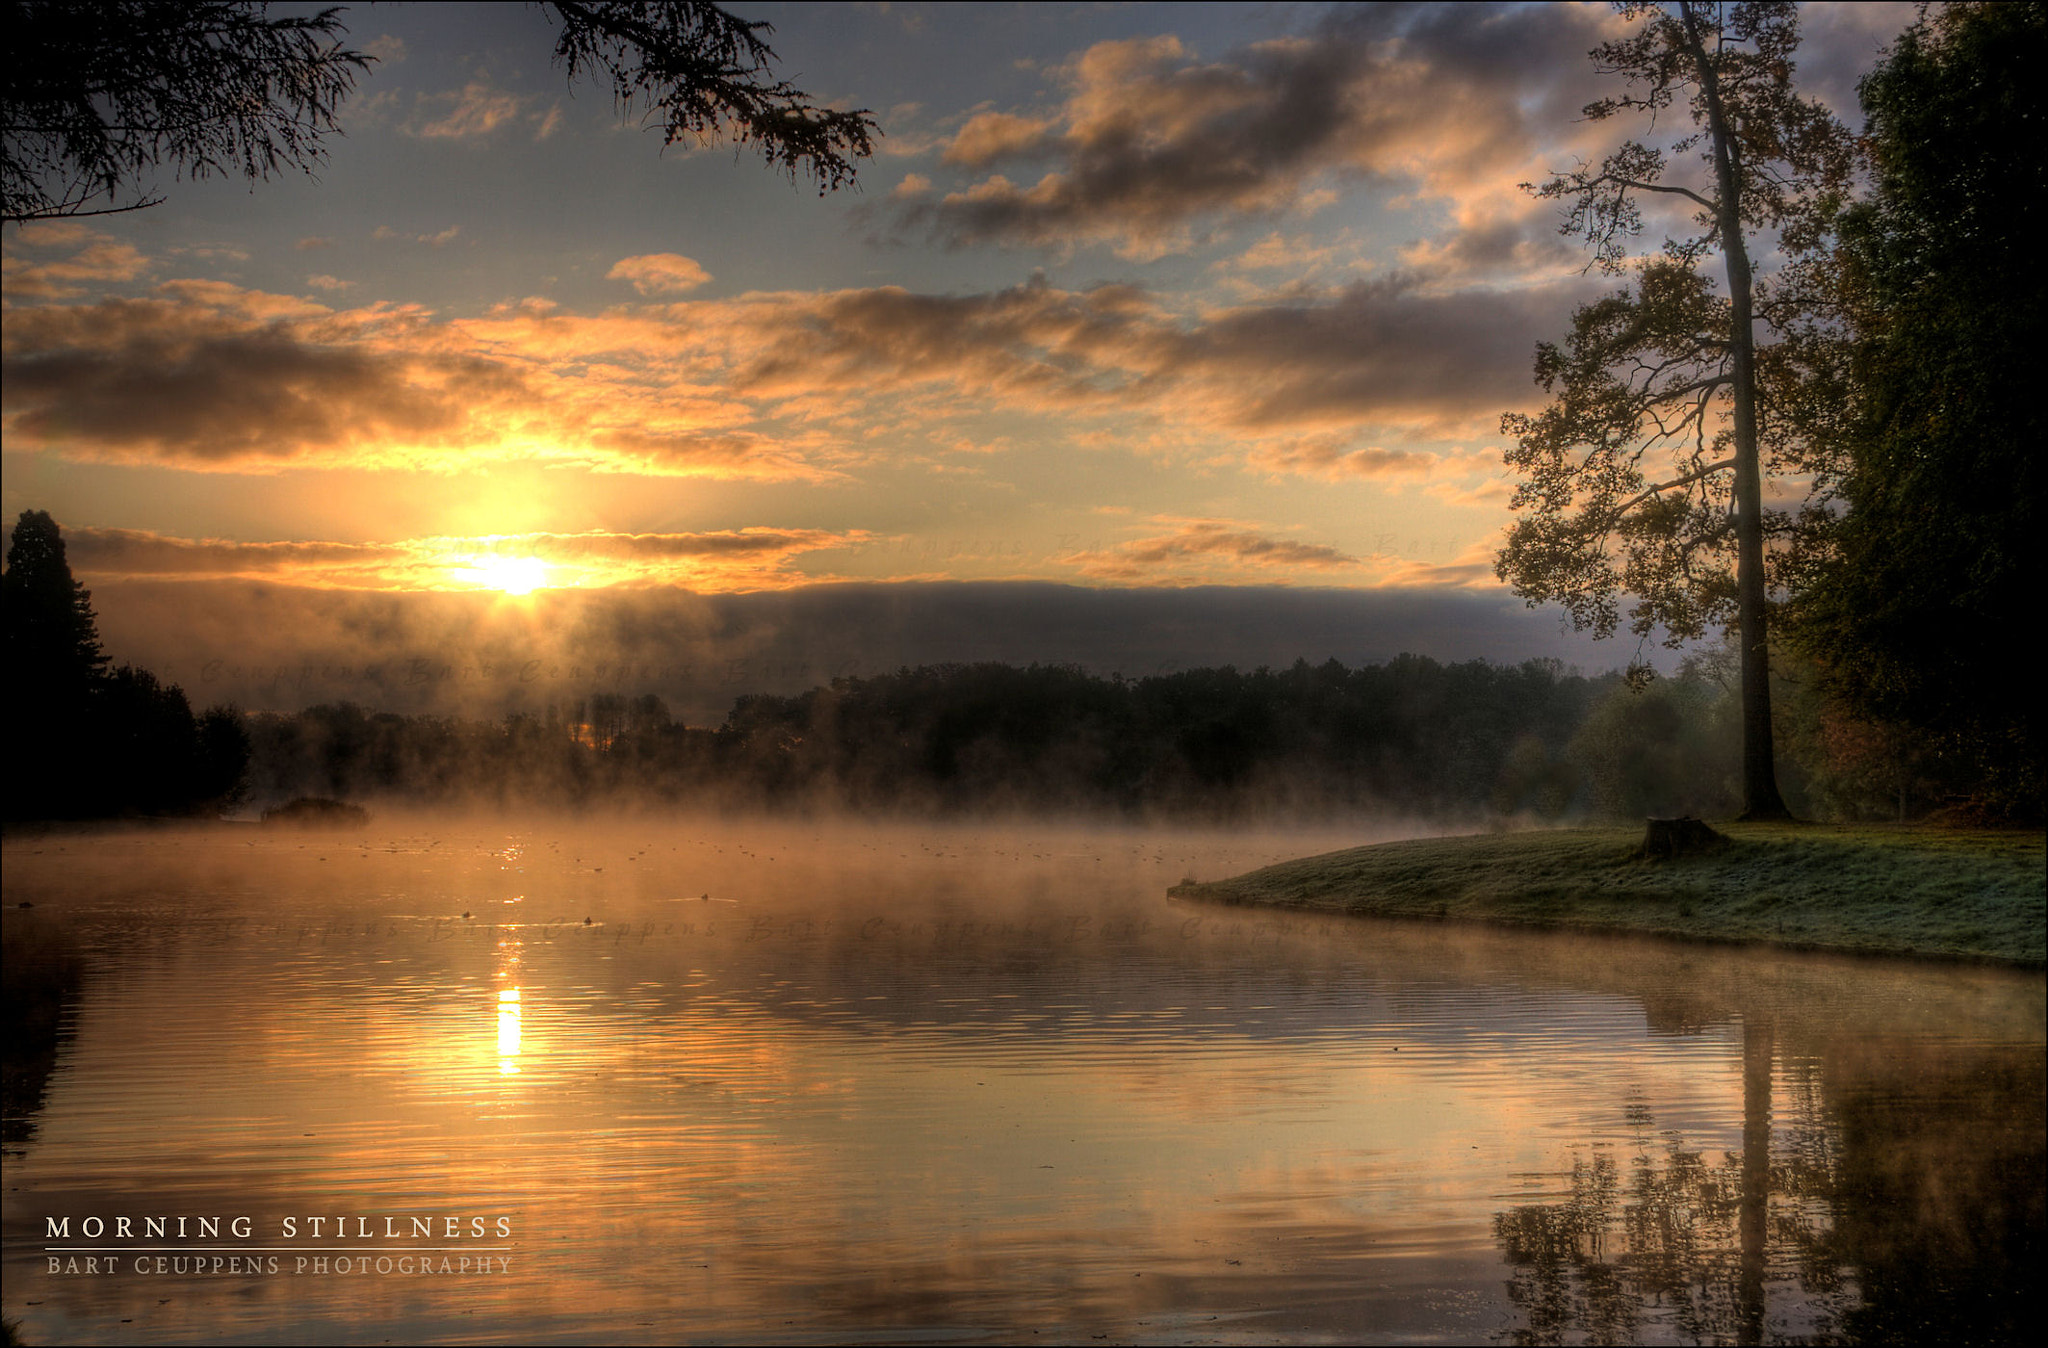 Photograph Morning stillness by Bart Ceuppens on 500px